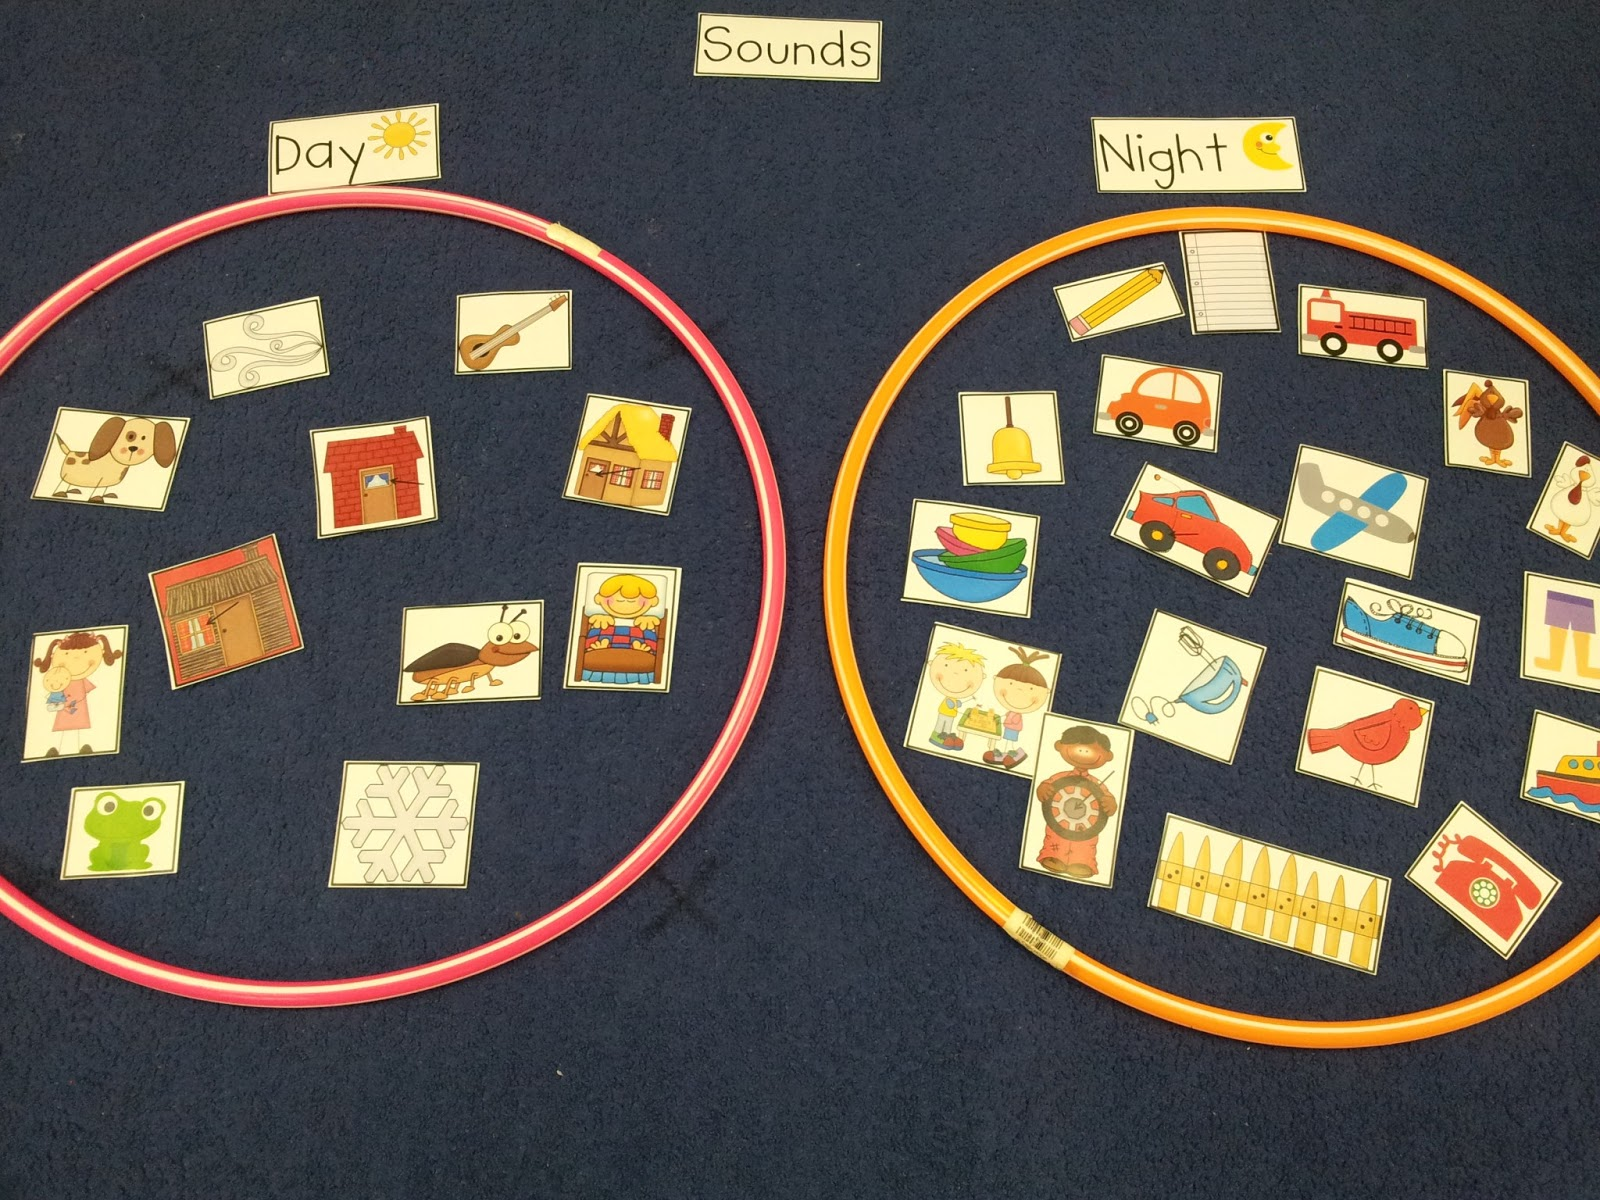 Chalk Talk A Kindergarten Blog The Sound Of Day The